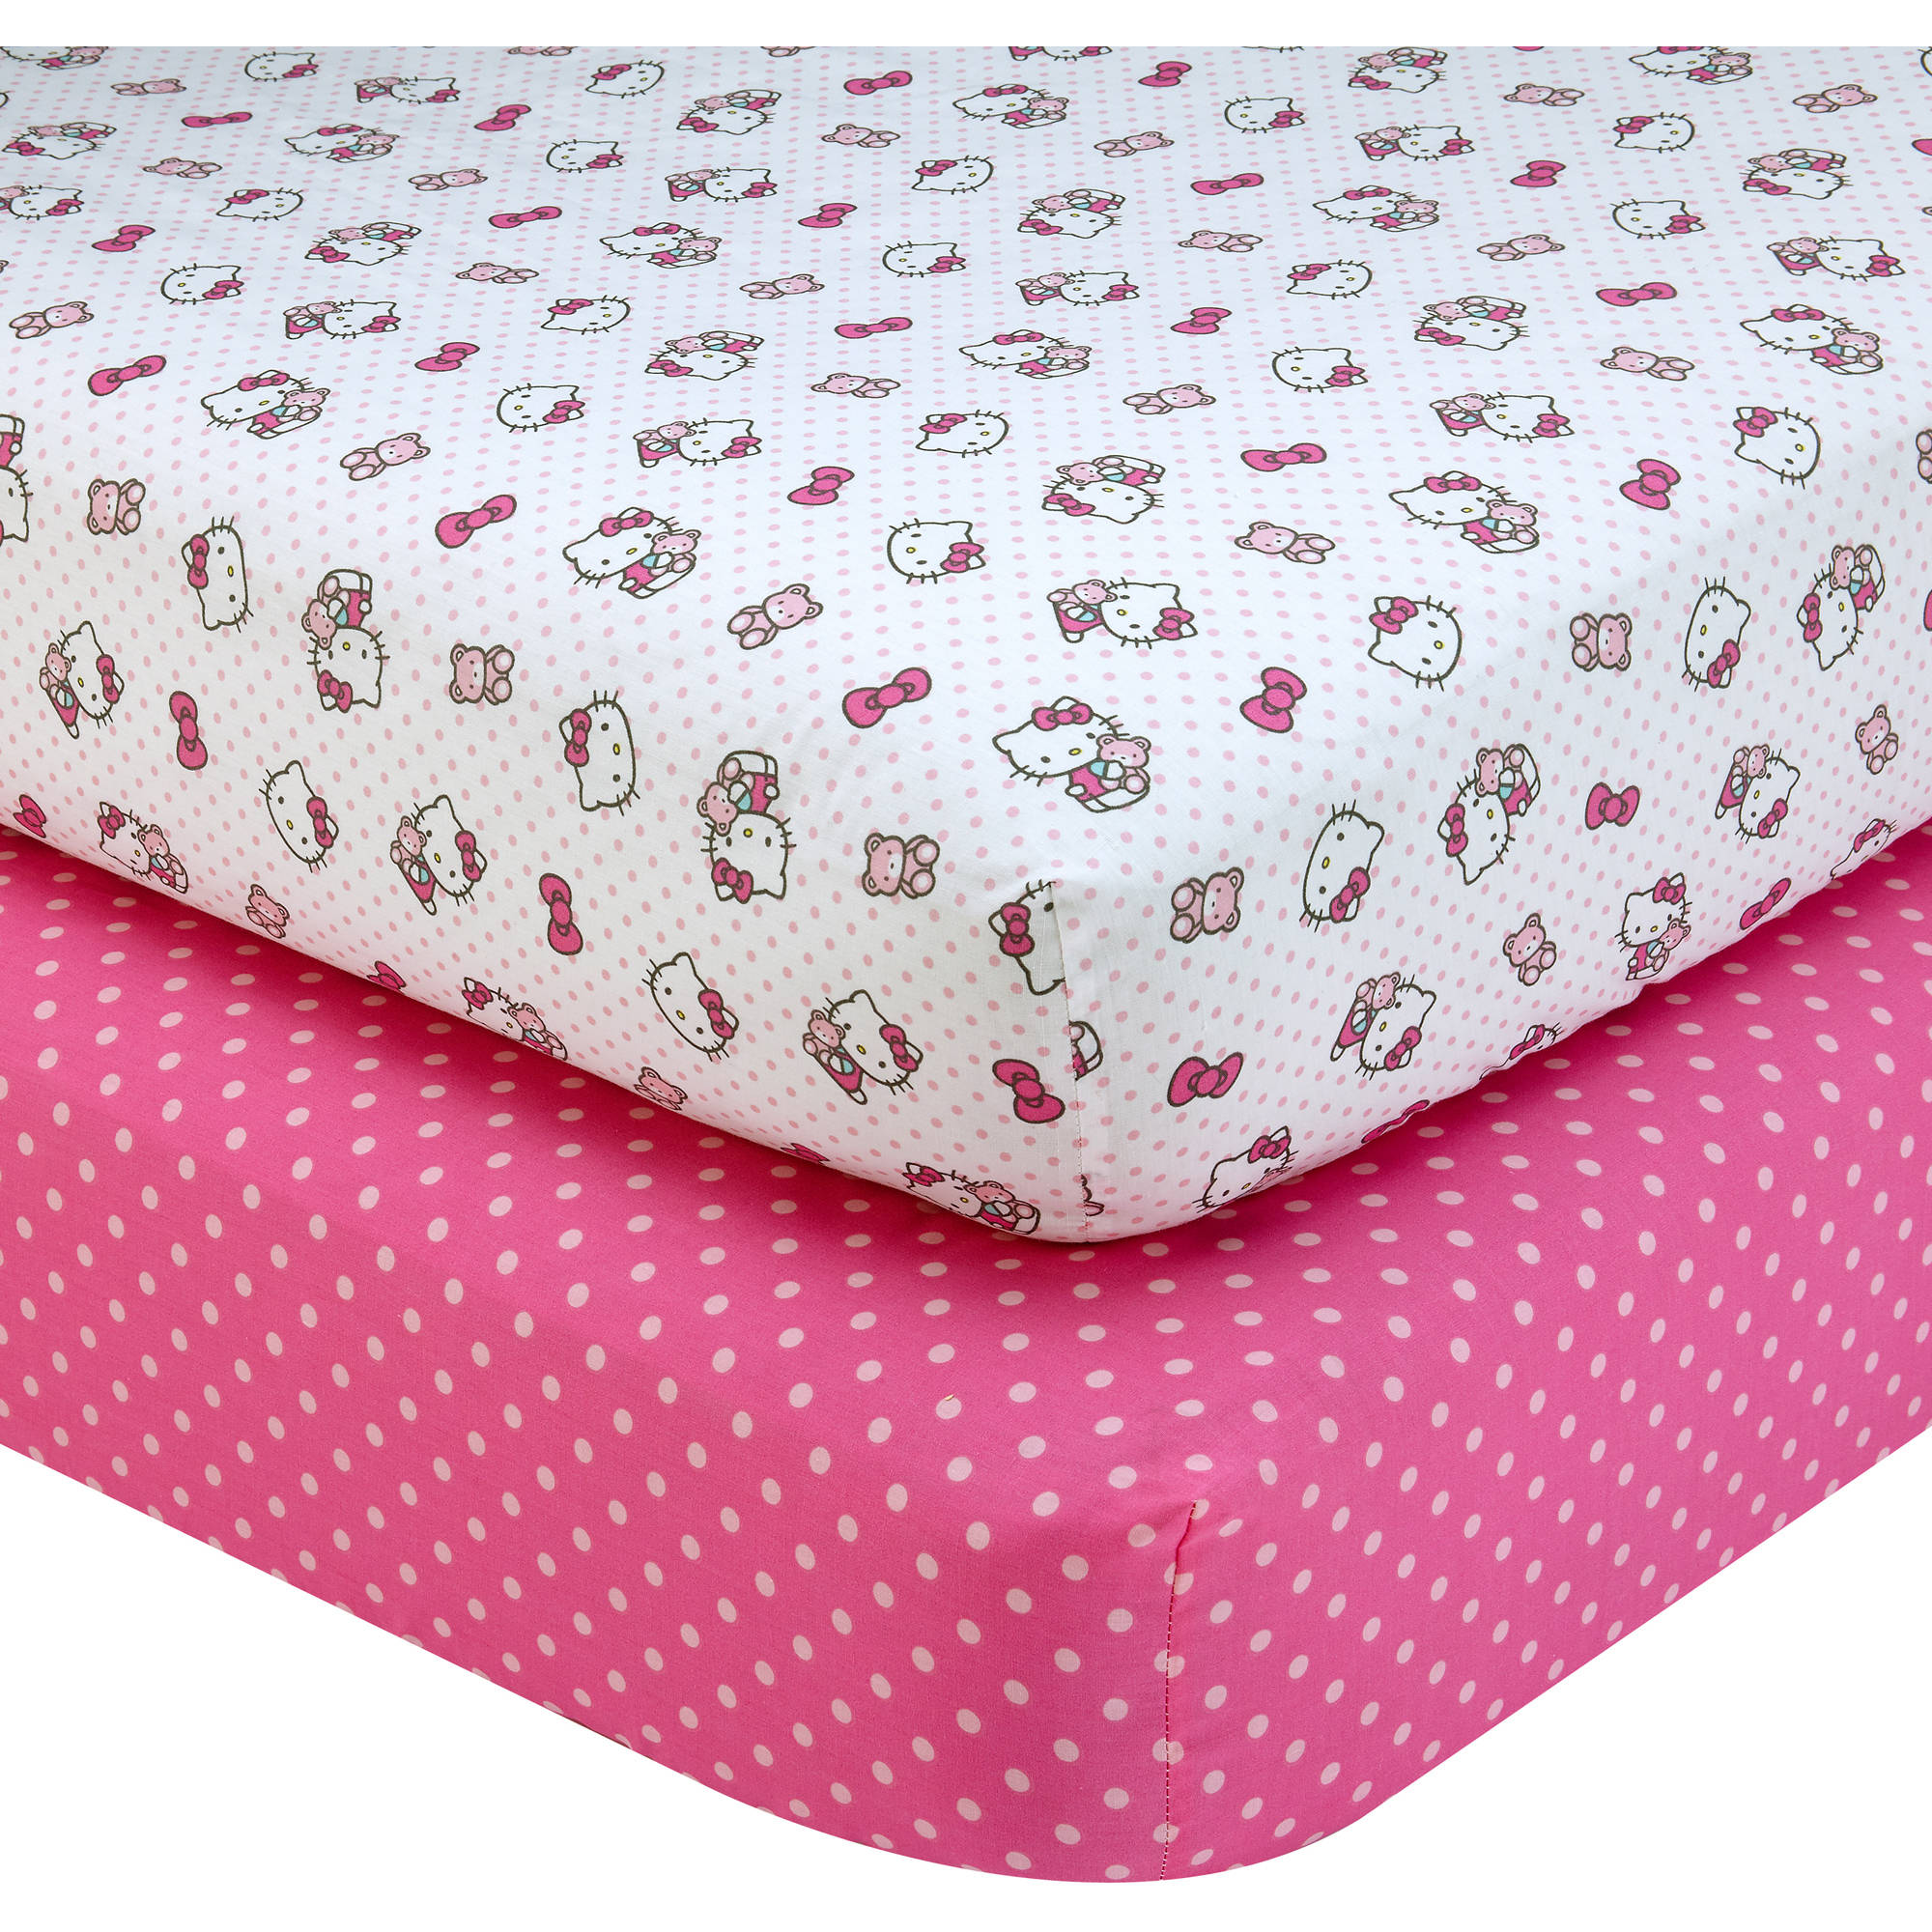 Hello Kitty Cute as a Button 2-Piece Crib Sheet Set